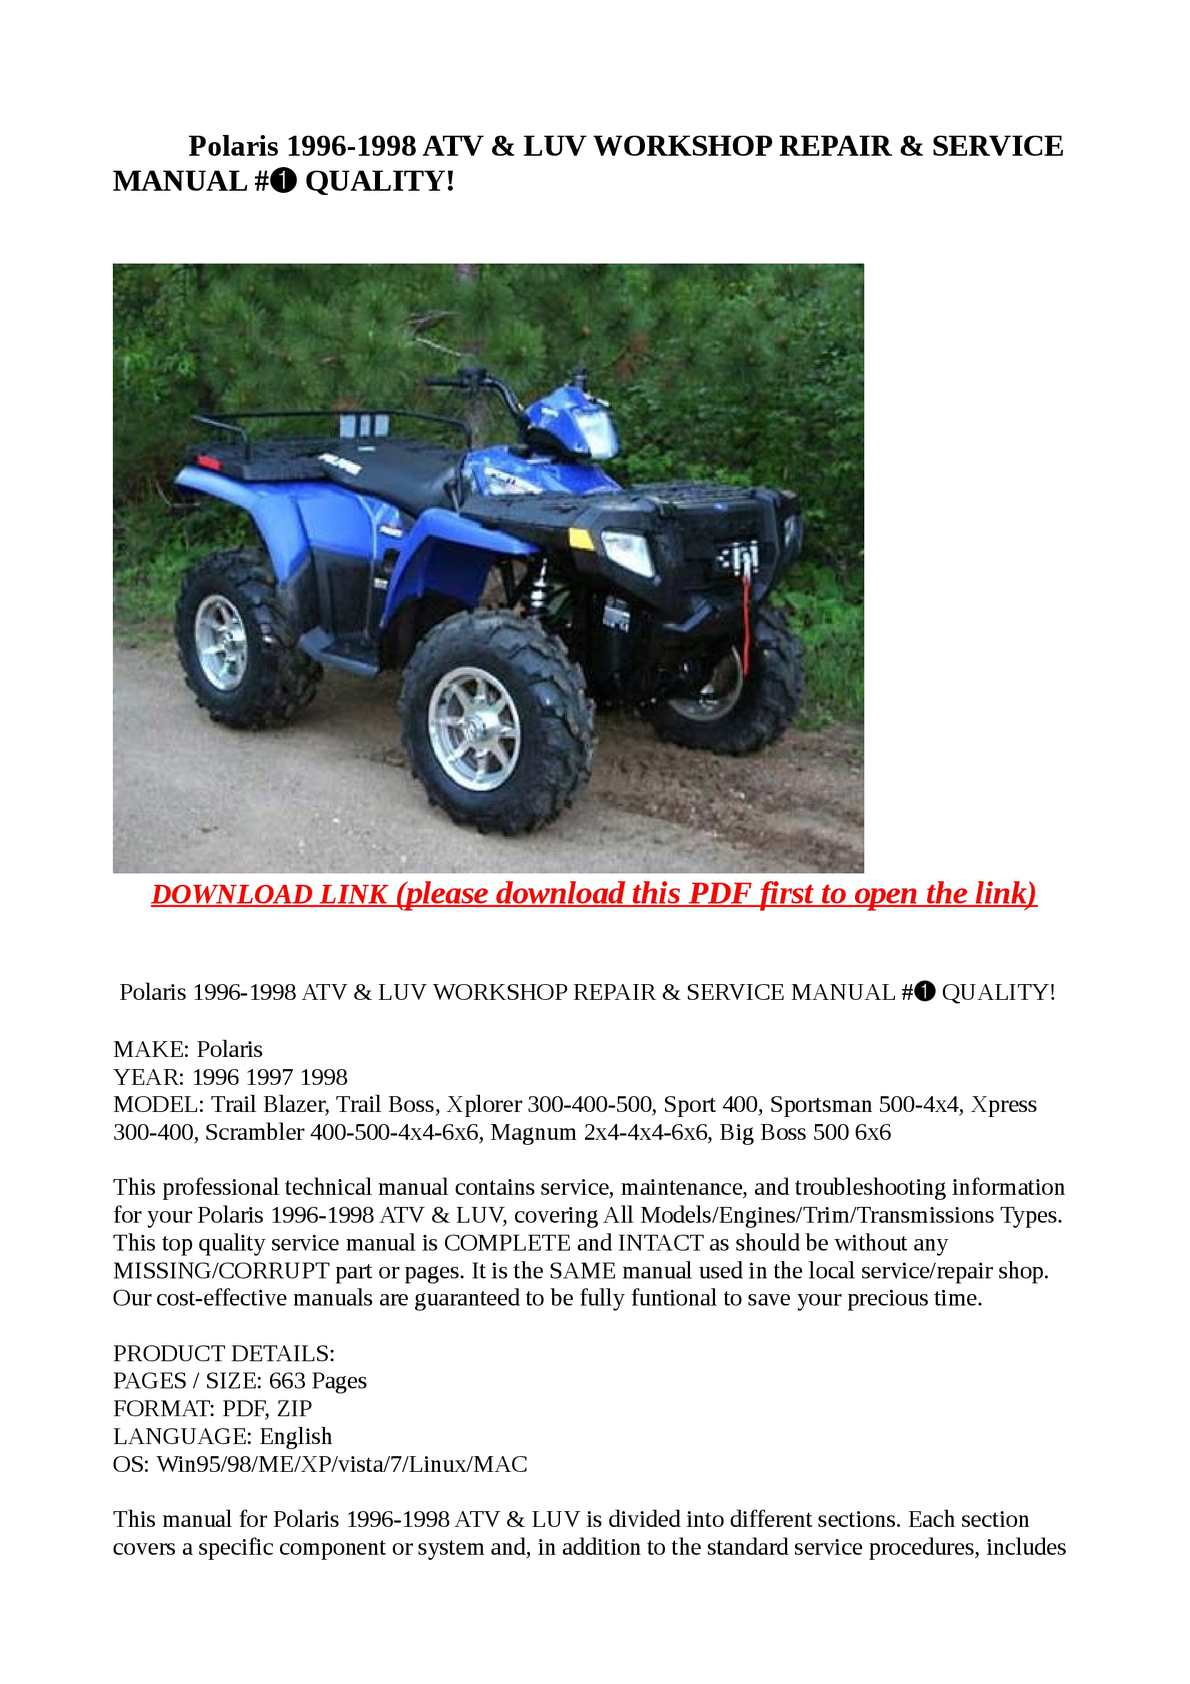 ... Array - polaris trailboss 335 manual ebook rh polaris trailboss 335 manual  ebook bitlab sol array 1998 polaris scrambler 400 service ...